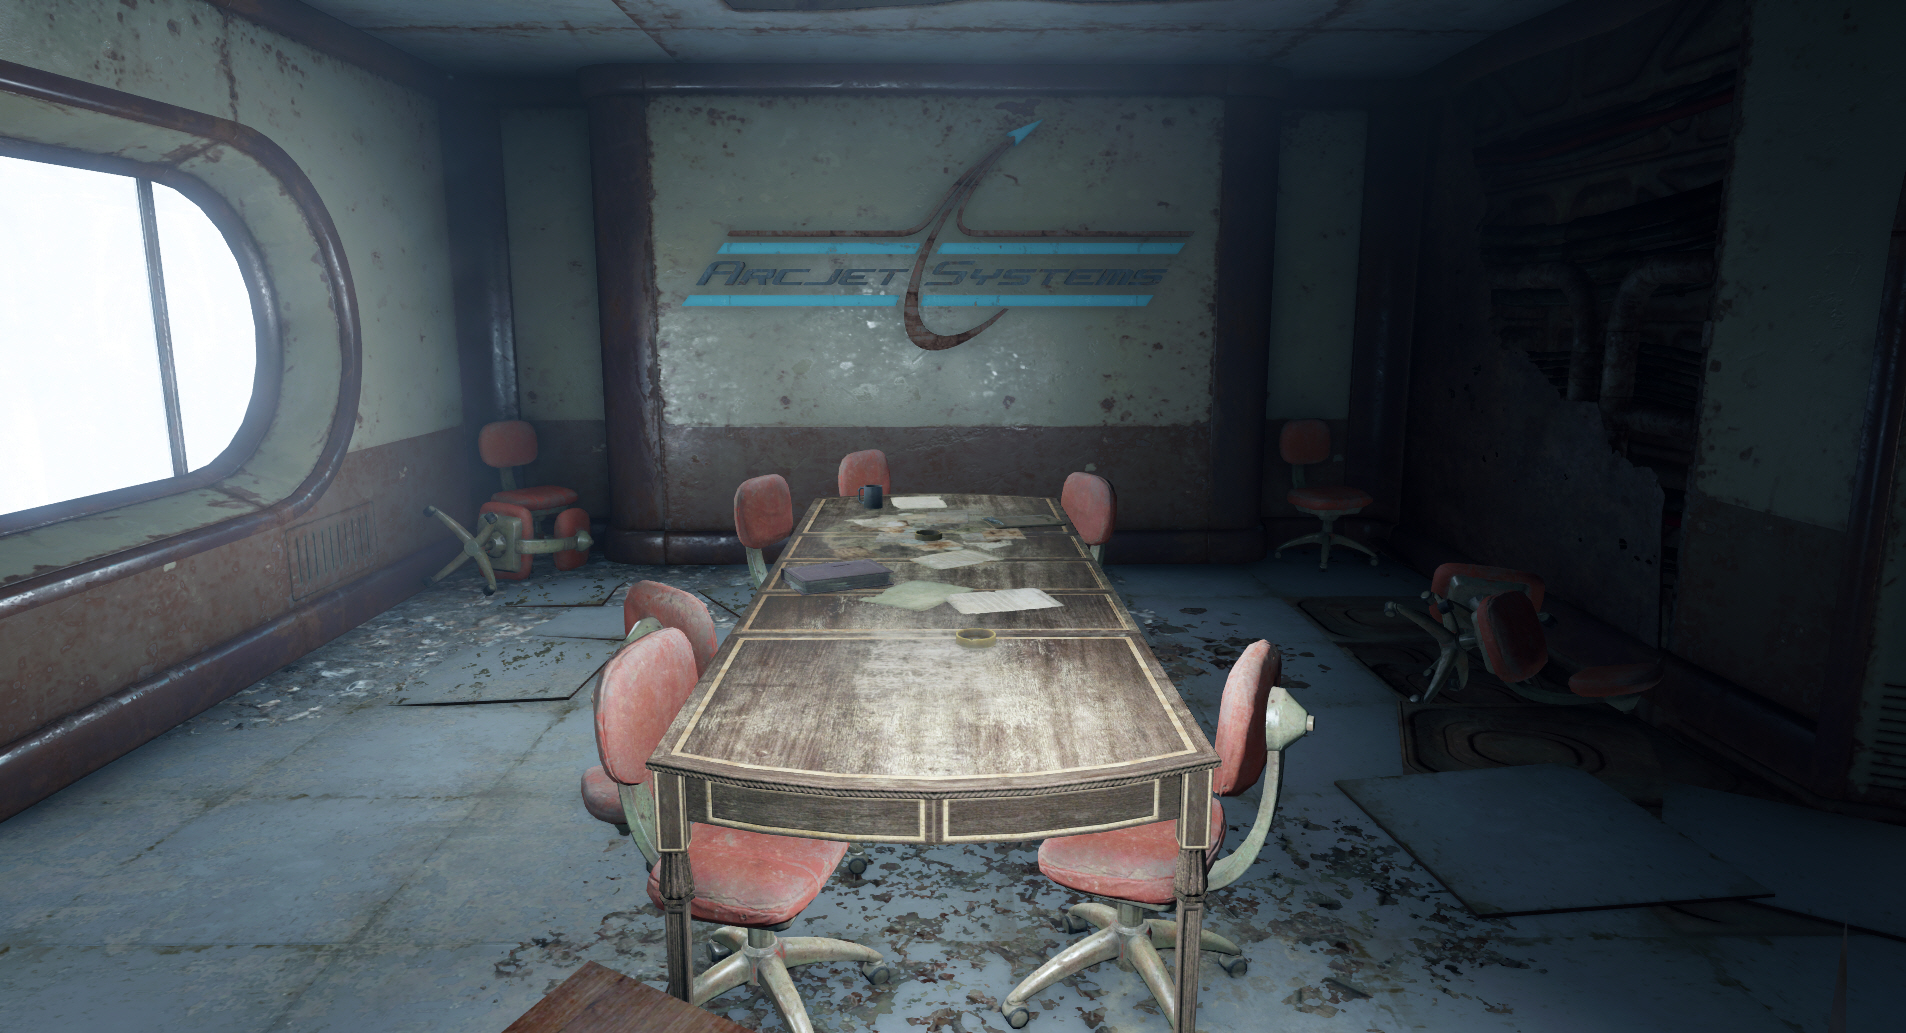 ArcjetSystems-ConferenceRoom-Fallout4